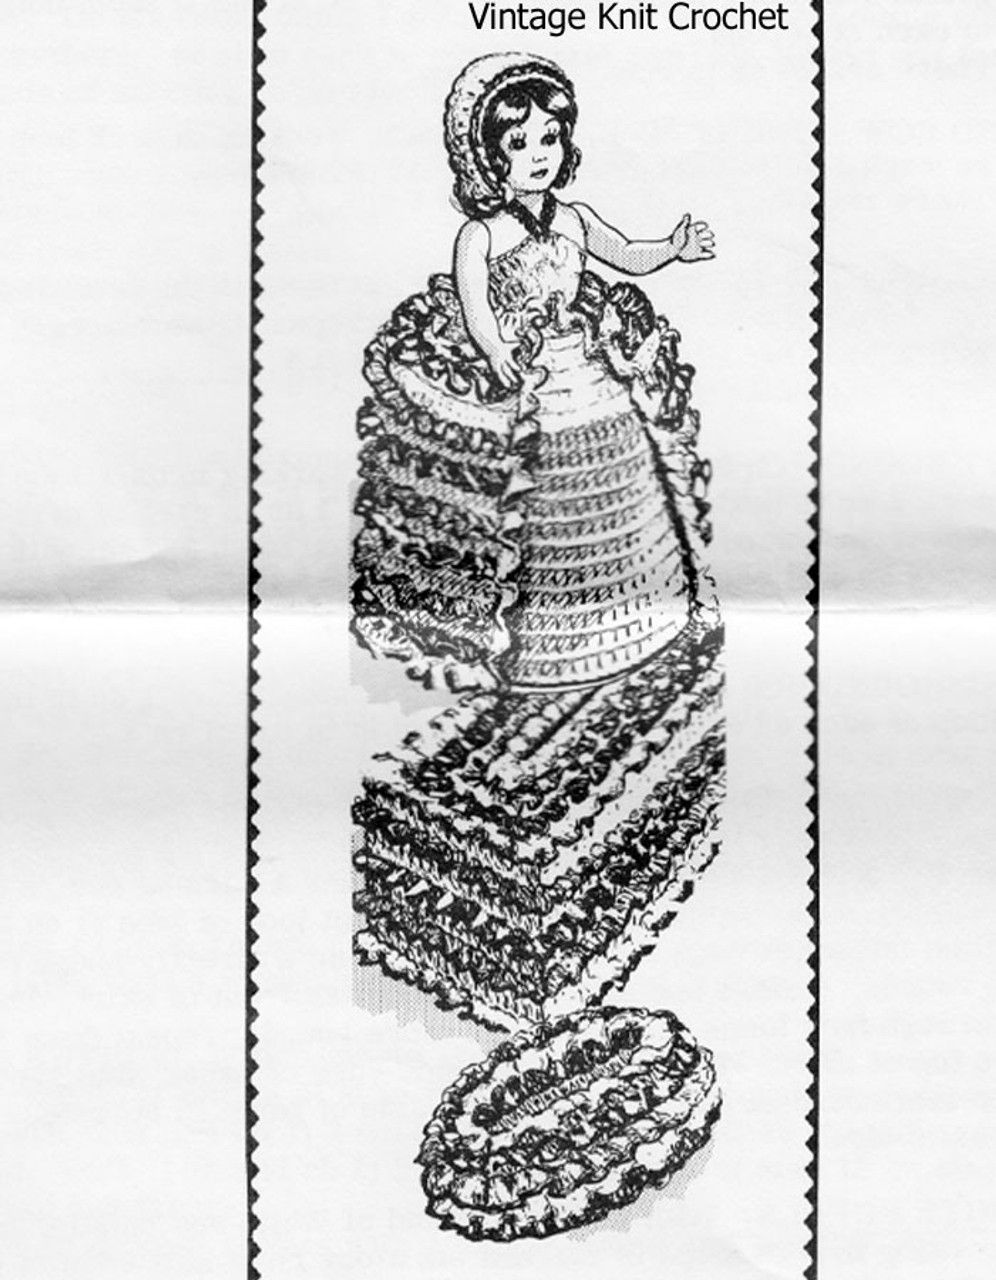 Vintage Crochet Tissue Topper Pattern Design 7045, Soap Holder